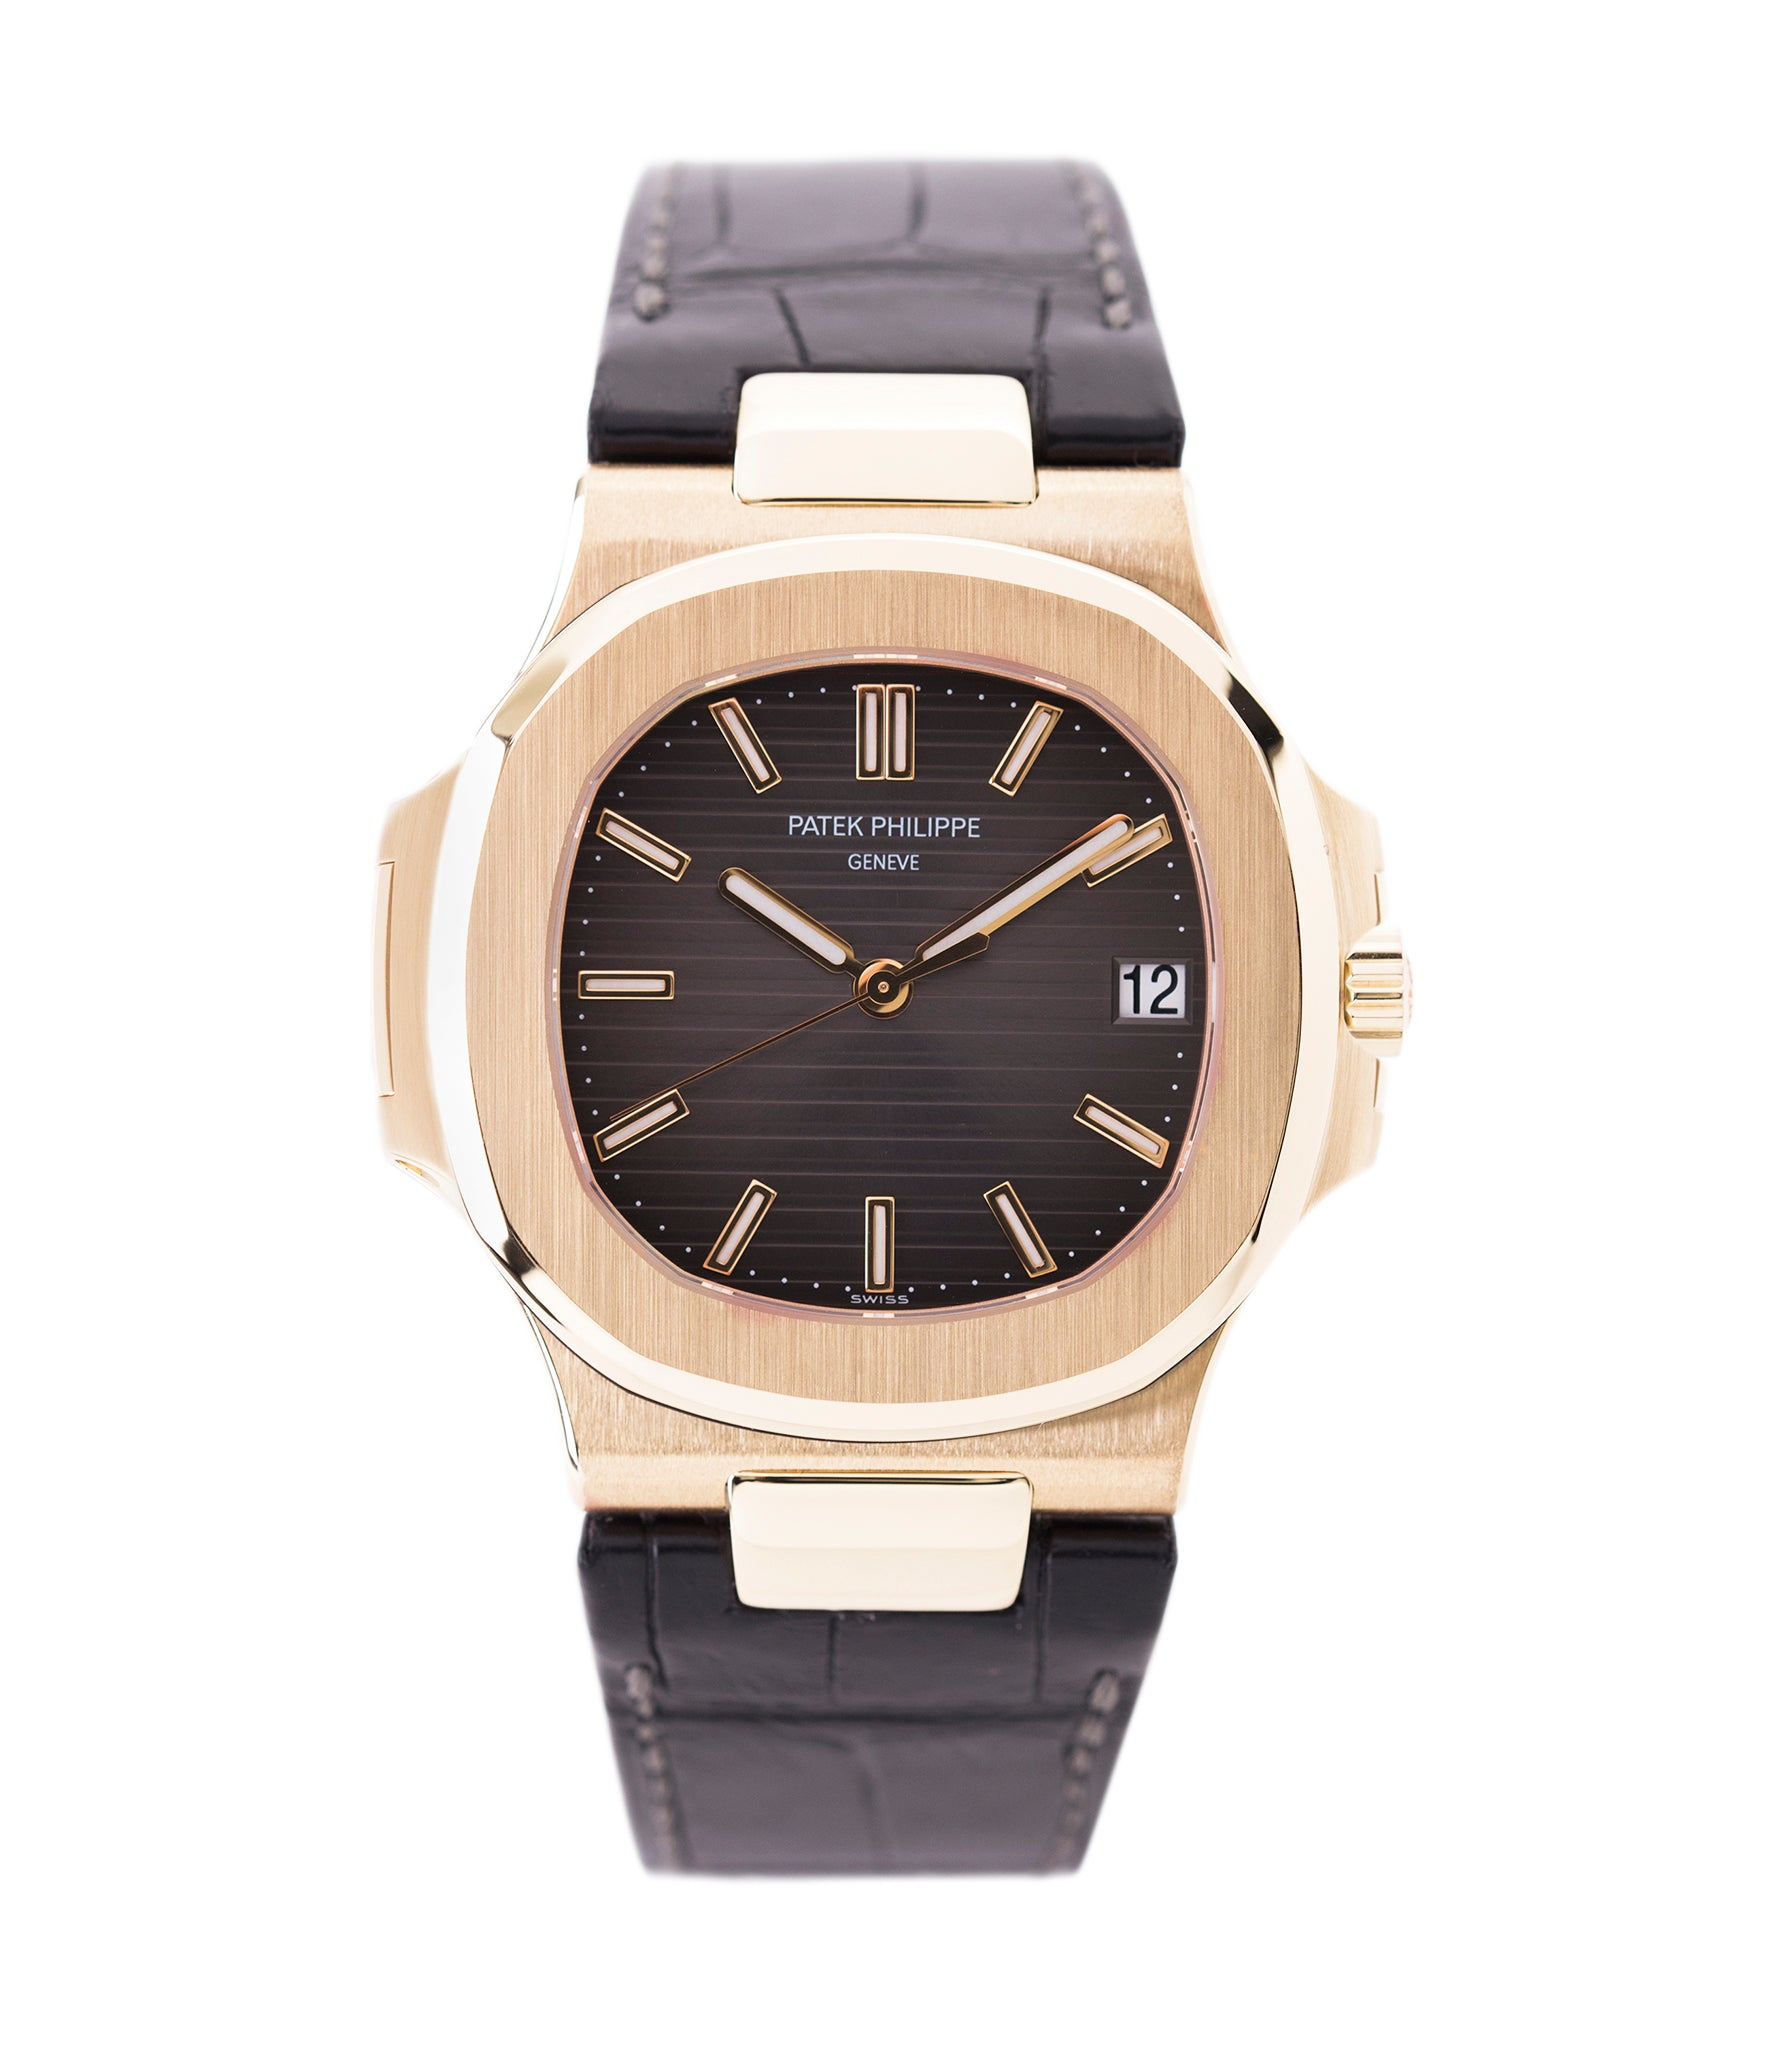 buy preowned Patek Philippe Nautilus 5711 rose gold dress watch chocolate brown dial for sale online at A Collected Man London UK specialist of rare watches